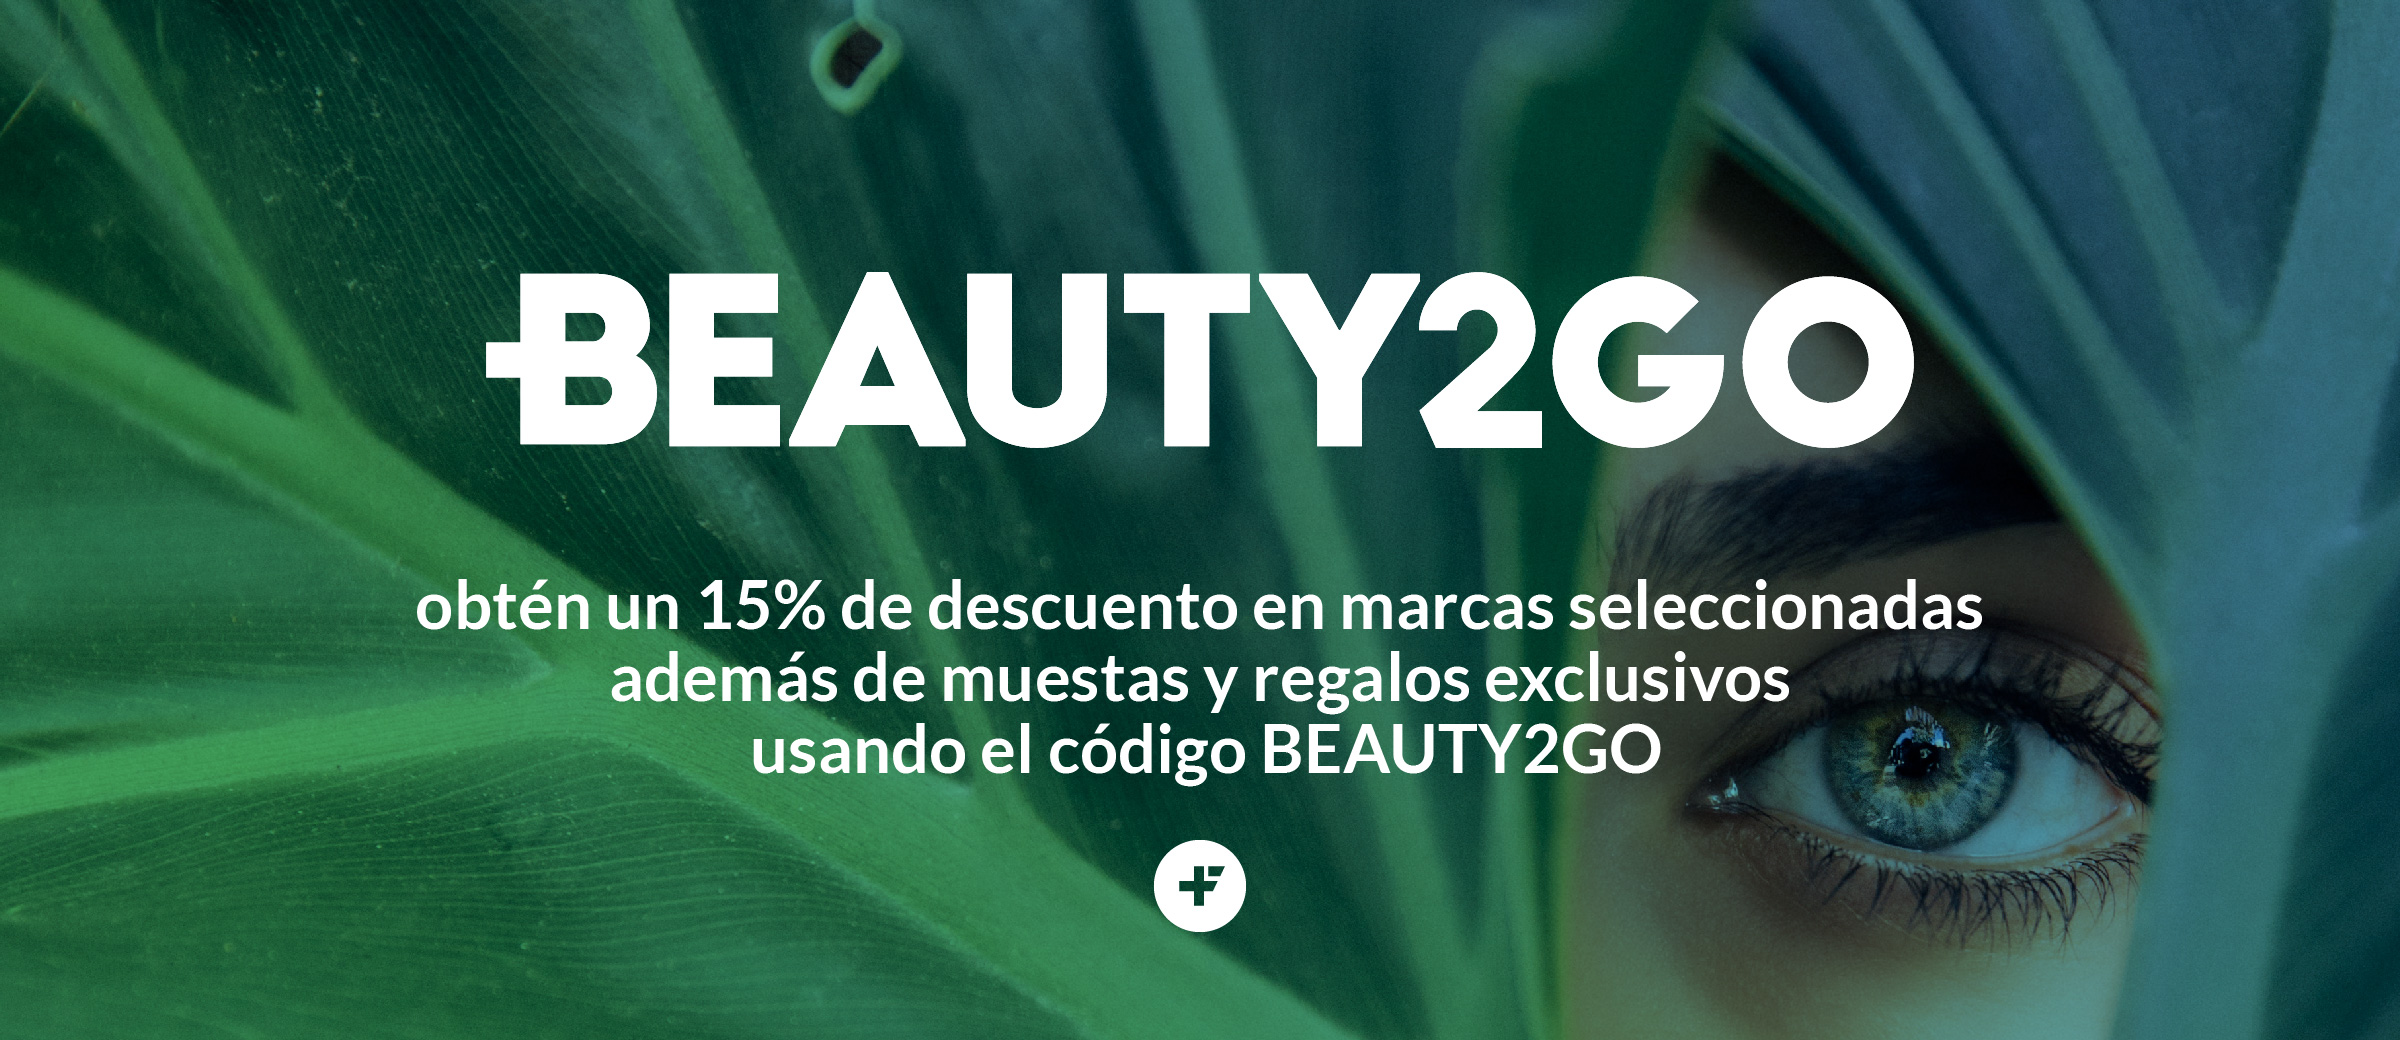 banner beauty2go